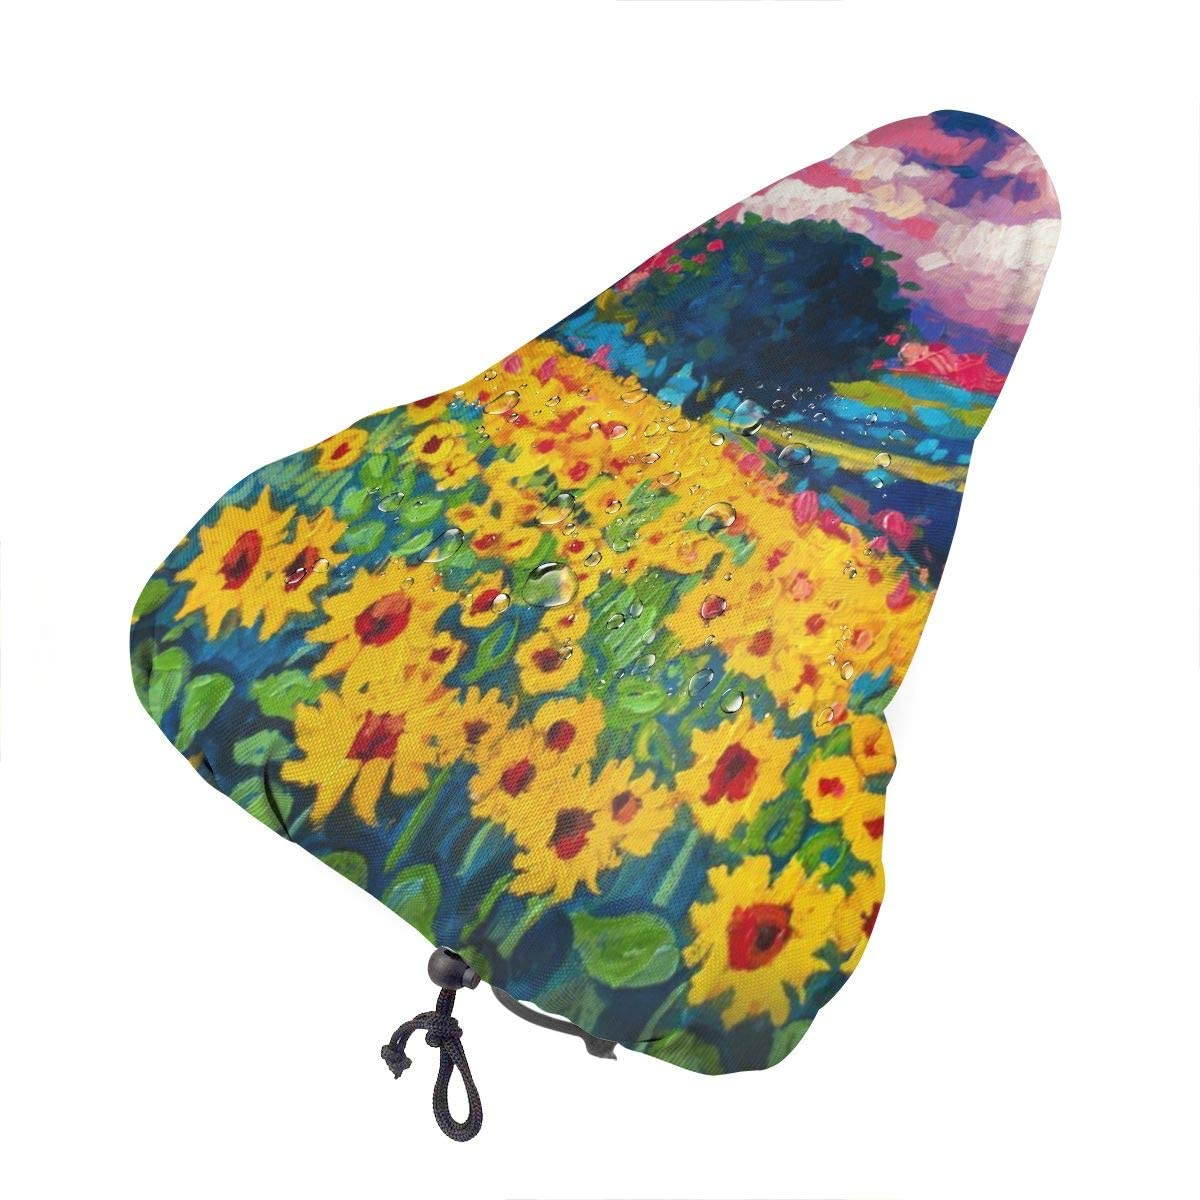 ZHOUSUN Waterproof Bike Seat Cover Unique New Year Pattern with Deer Bicycle Saddle Rain Dust Covers with Drawstring,Comfort for Women,Men,Kids